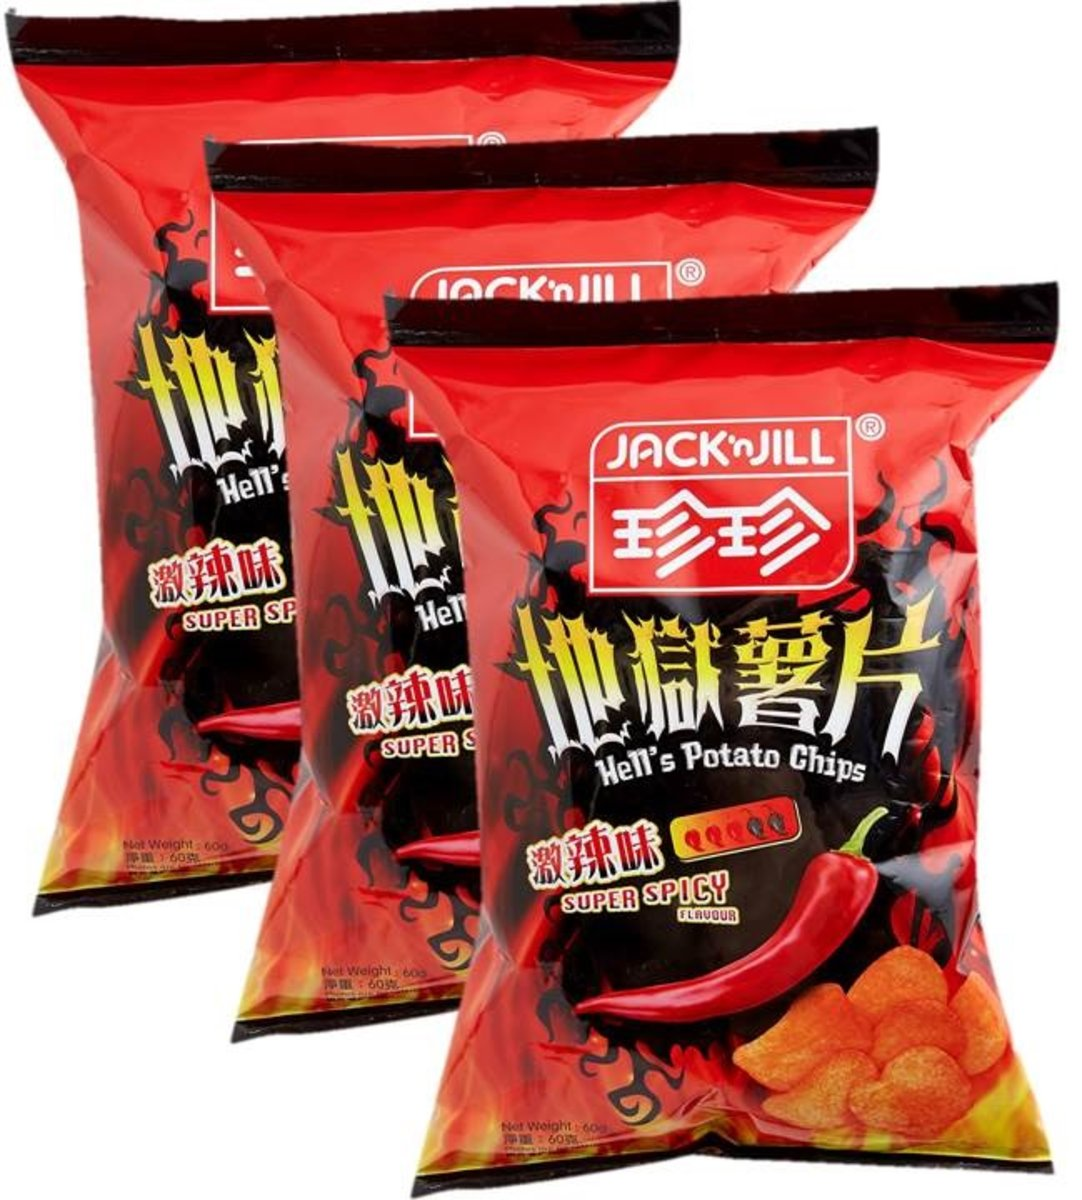 Hell's Potato Chips Super Spicy Flavoured x3